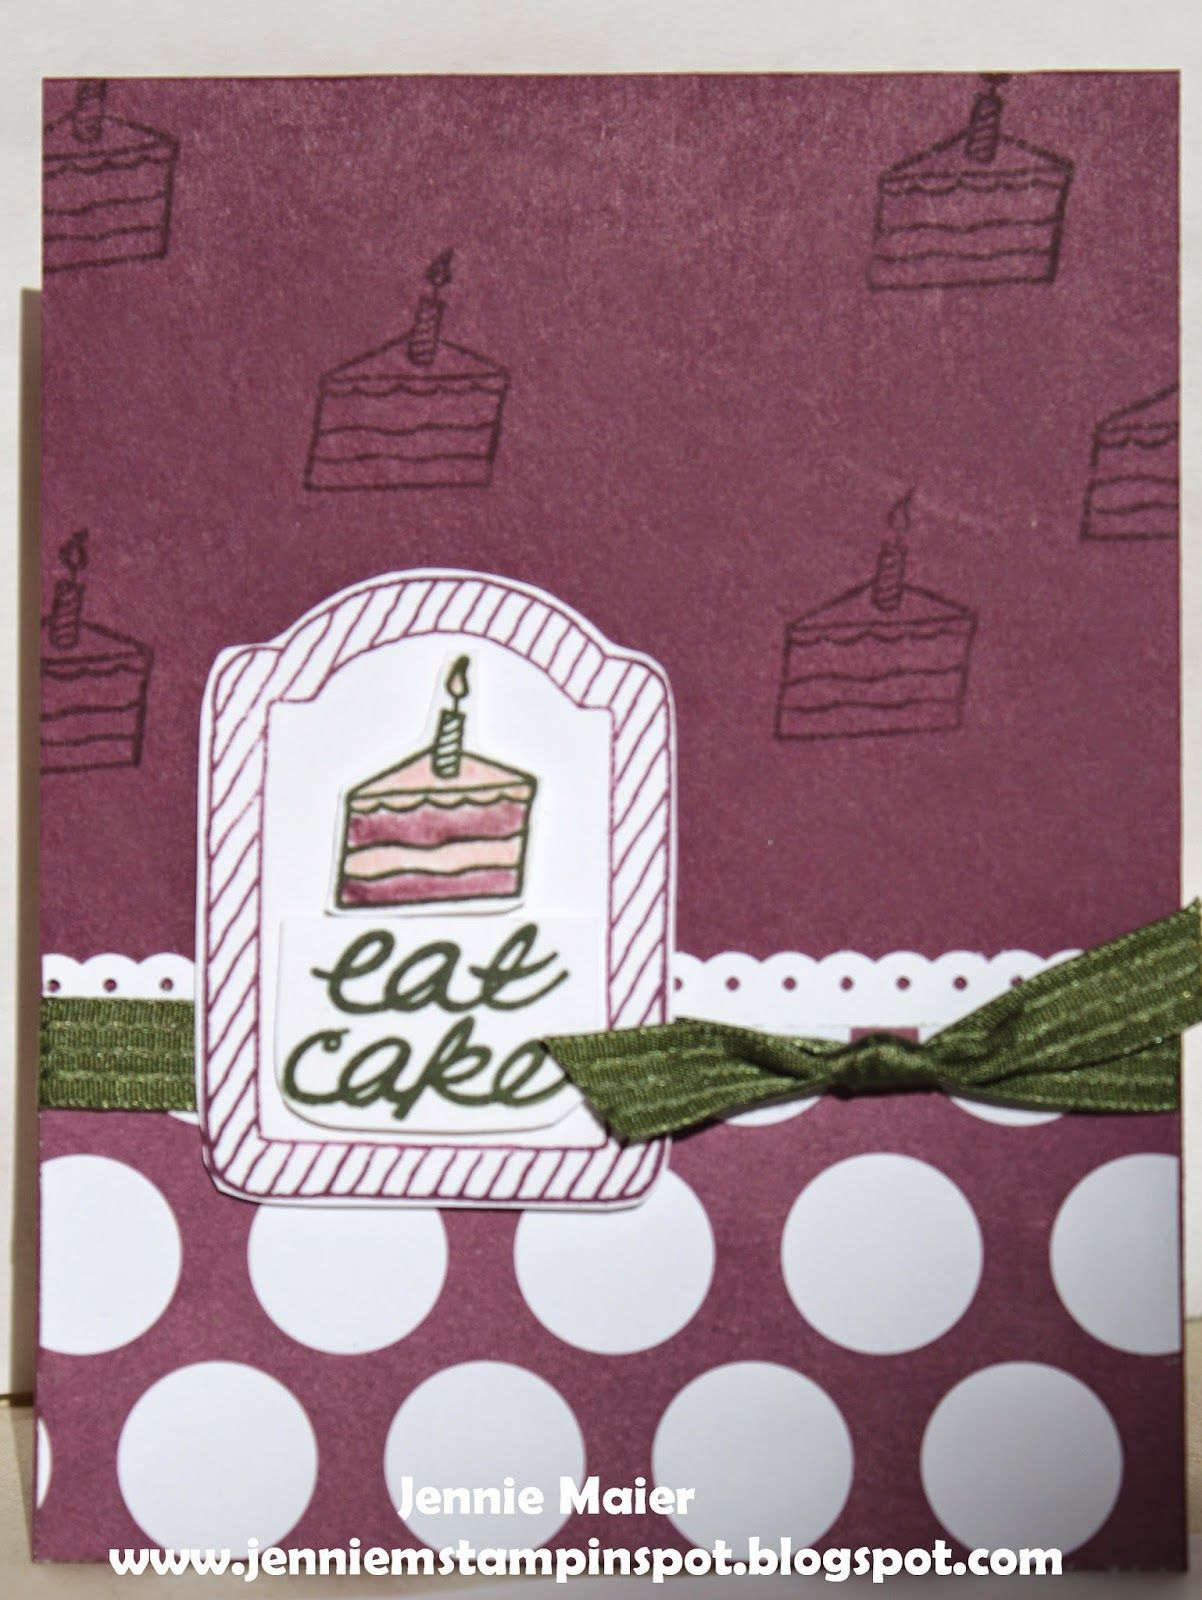 Jennie mus stampin spot cards pinterest snail mail snail and